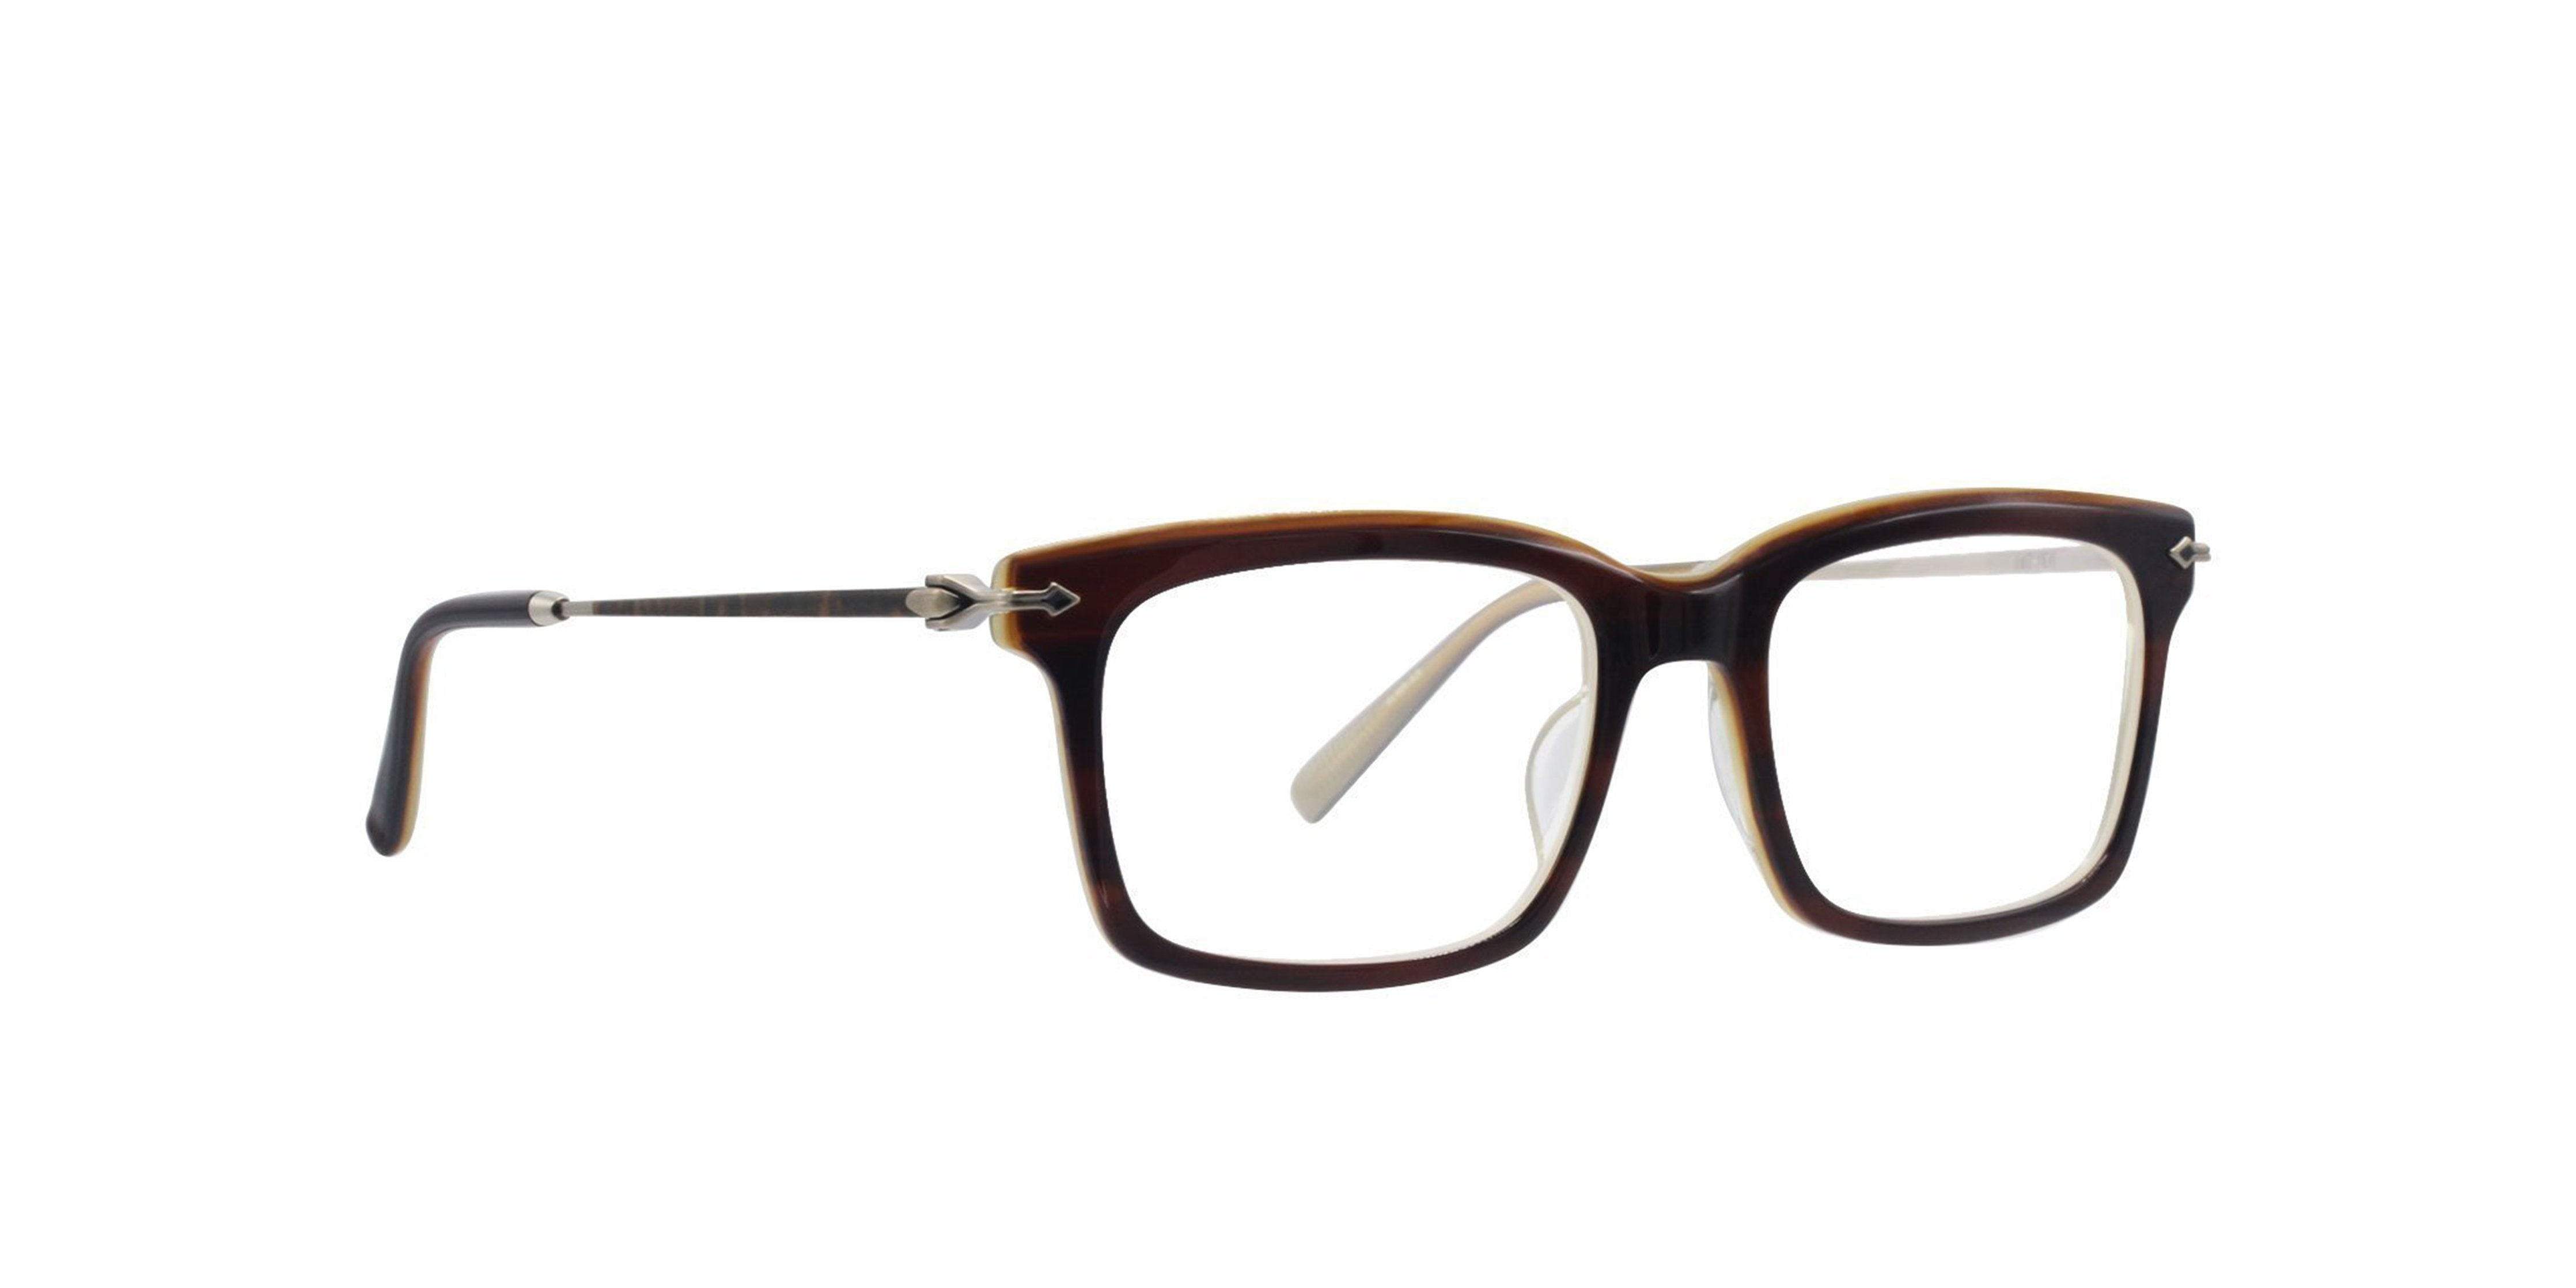 Matsuda - M2037 Brown/Clear Rectangular Women Eyeglasses - 53mm-Eyeglasses-Designer Eyes